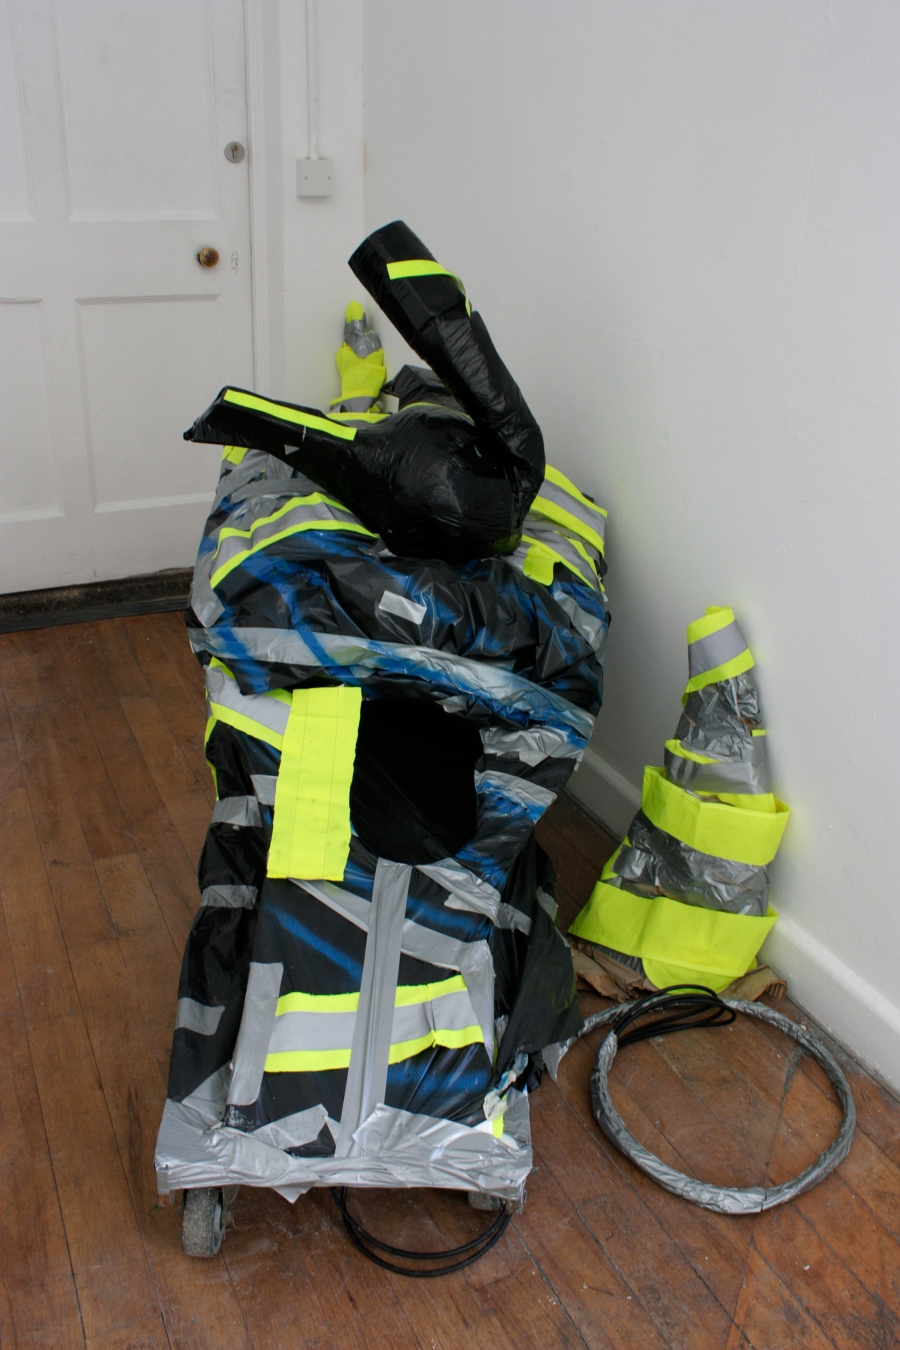 Fire-proof Suit Romantic Fire Protection Cotton Safety Fire Fighting Suit With Boots Gloves Helmet